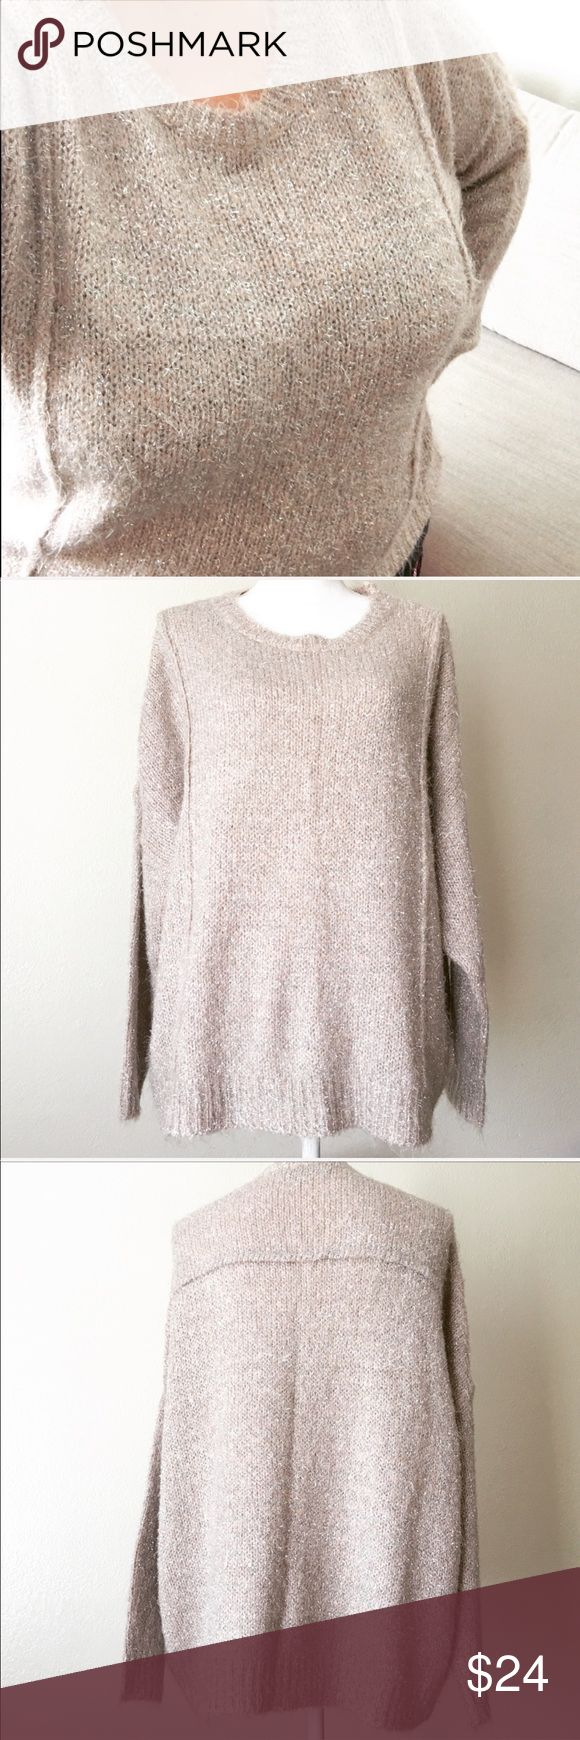 """Jennifer Lopez metallic oversized cozy sweater Jennifer Lopez pullover sweater, soft and fuzzy acrylic/nylon/metallic/poly blend, has a blush pink undertone with silver metallic threads. I tried this on, and absolutely love it, but it's rarely cold enough for a sweater here. Hopefully someone else will love it and enjoy it! In excellent condition, is an oversized XL but could fit up to a 2X, I am a plus size 20 (see modeled pic). Approximate measurements: bust = 54"""" length from shoulder…"""